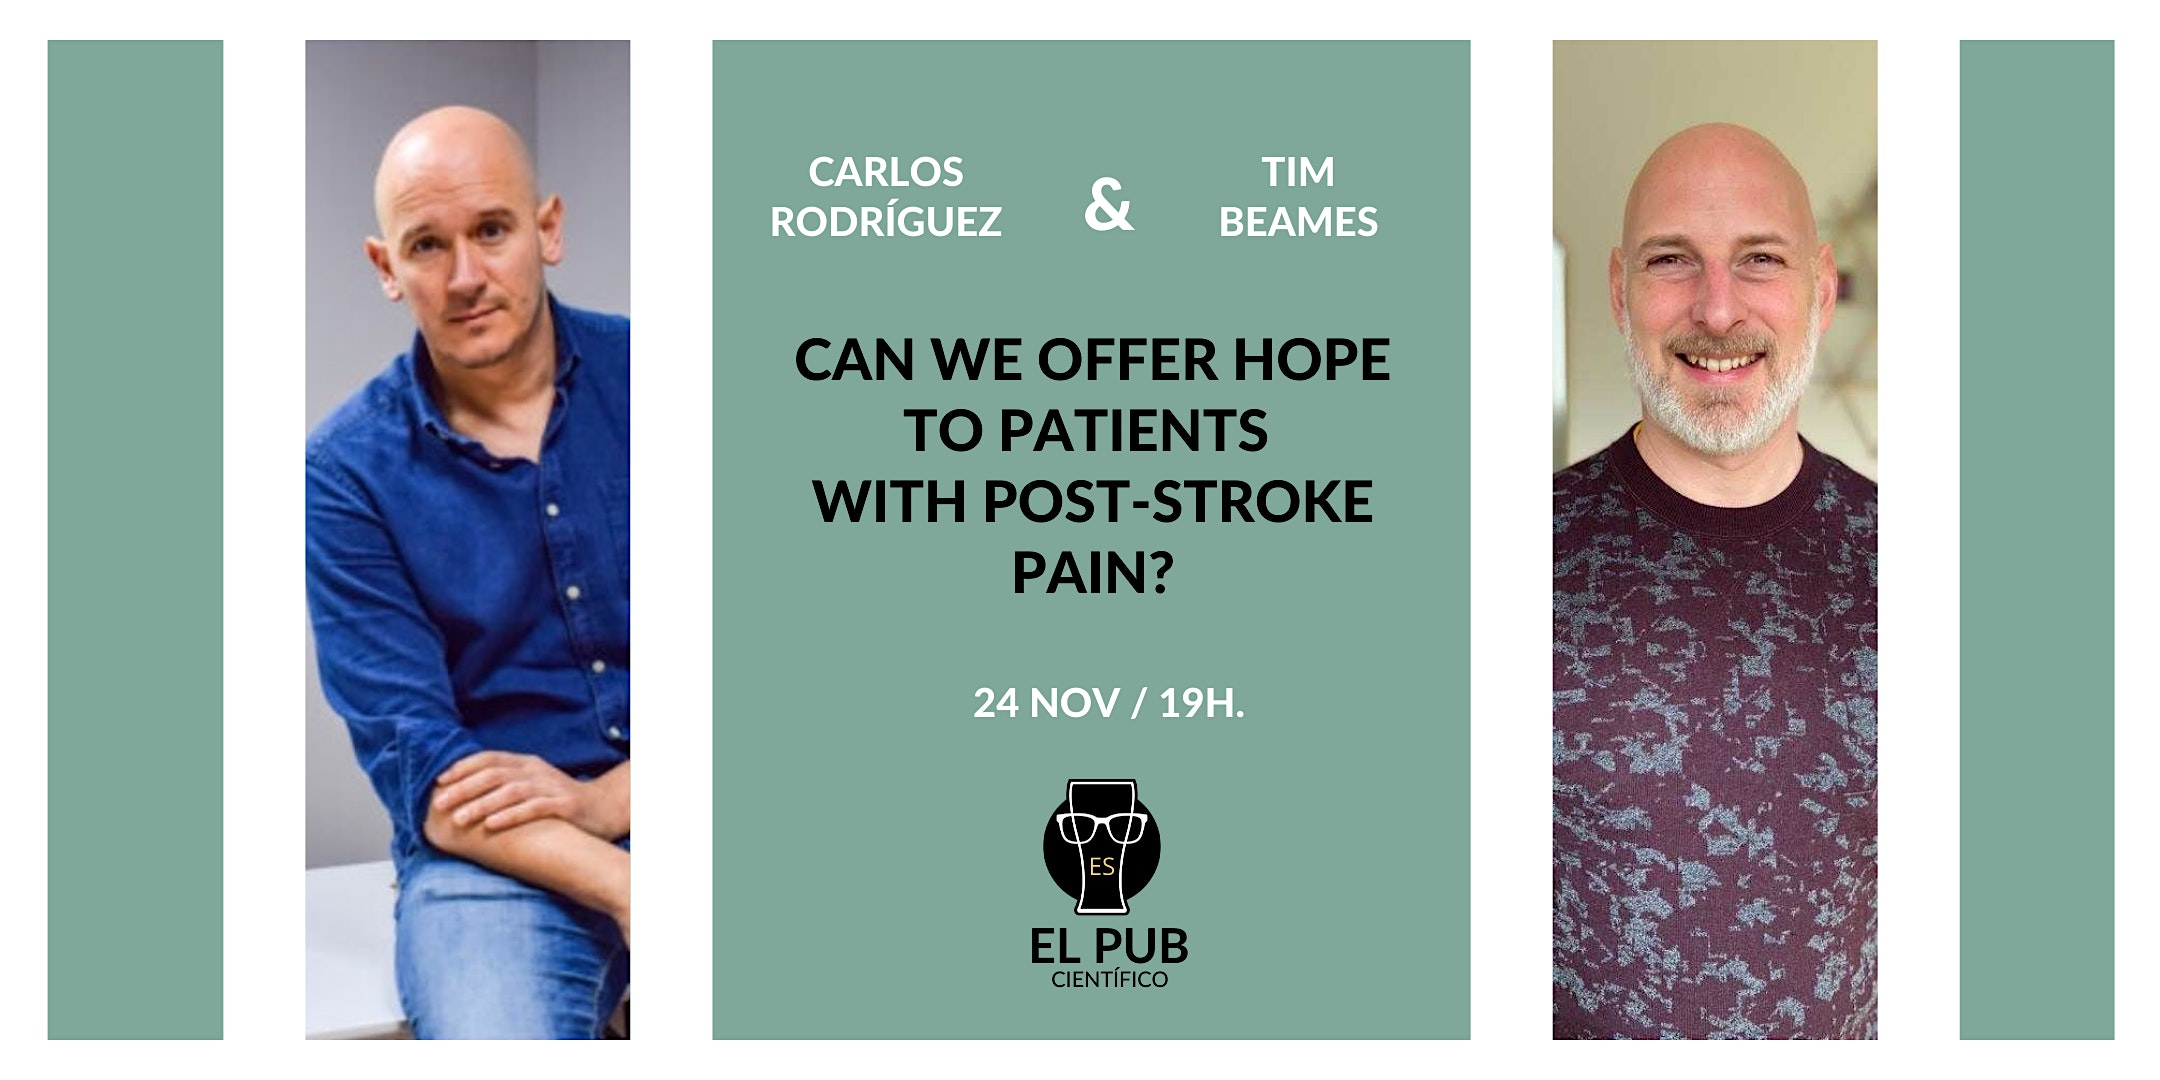 Can we offer hope to patients with post-stroke pain?